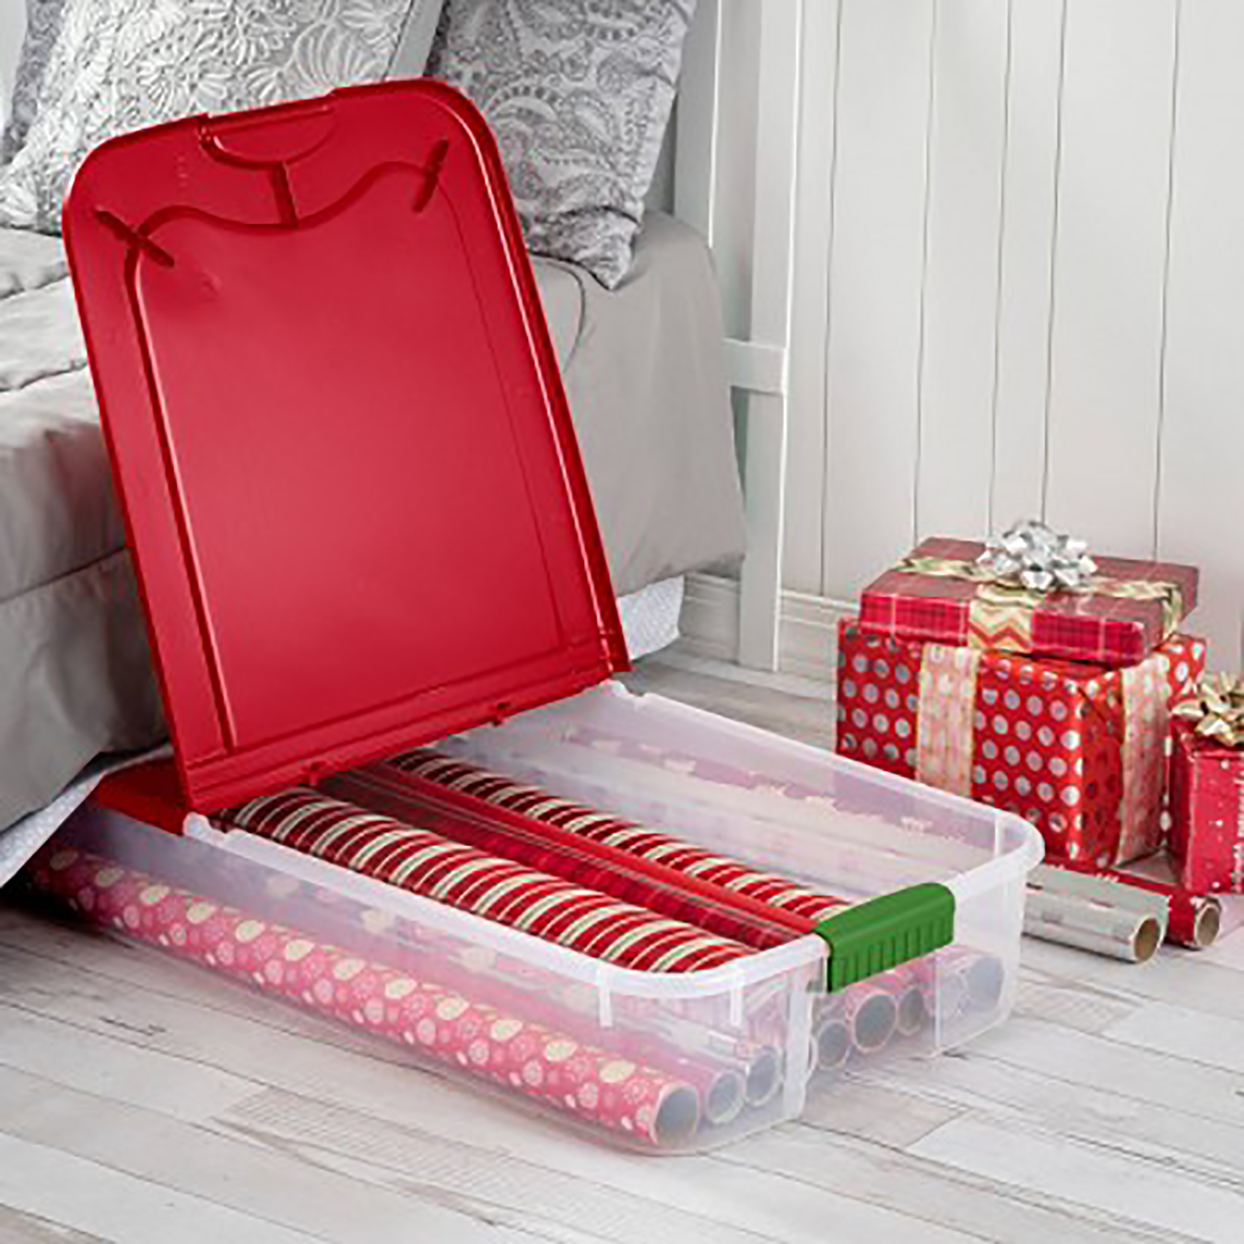 plastic underbed storage bin with red lid